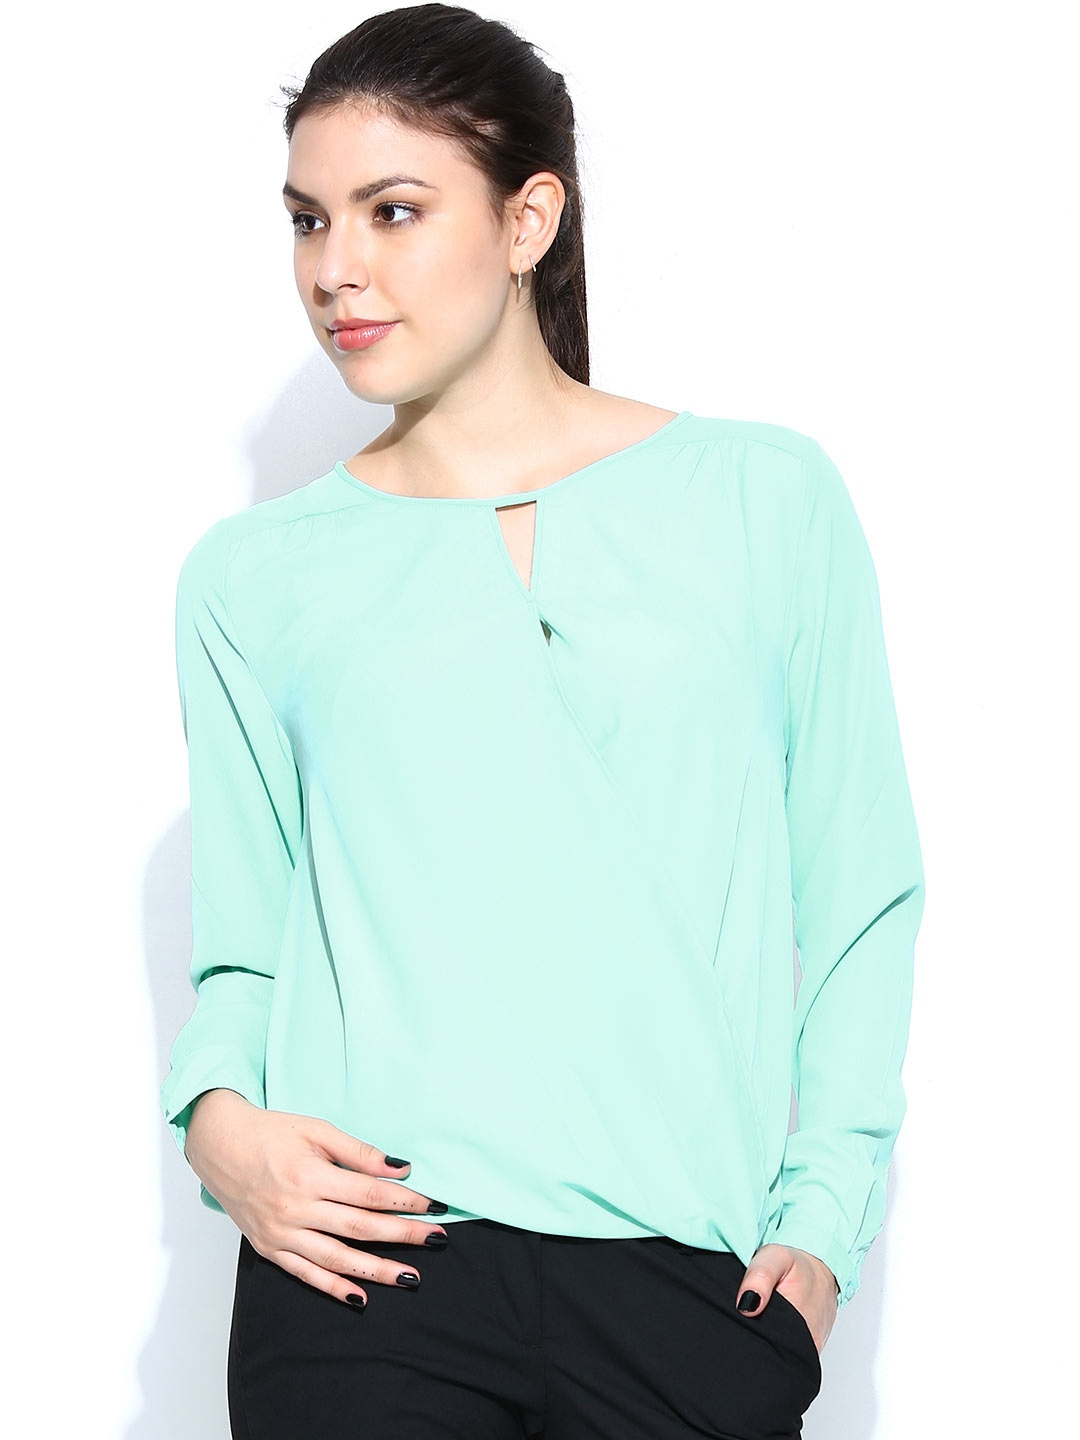 Pilot Molly Hanky Hem Camisole Top in Mint Green Find this Pin and more on Polyvore by Erin Ciolli. A fashion look from August featuring mint crop top. Designer Clothes, Shoes & Bags for Women.